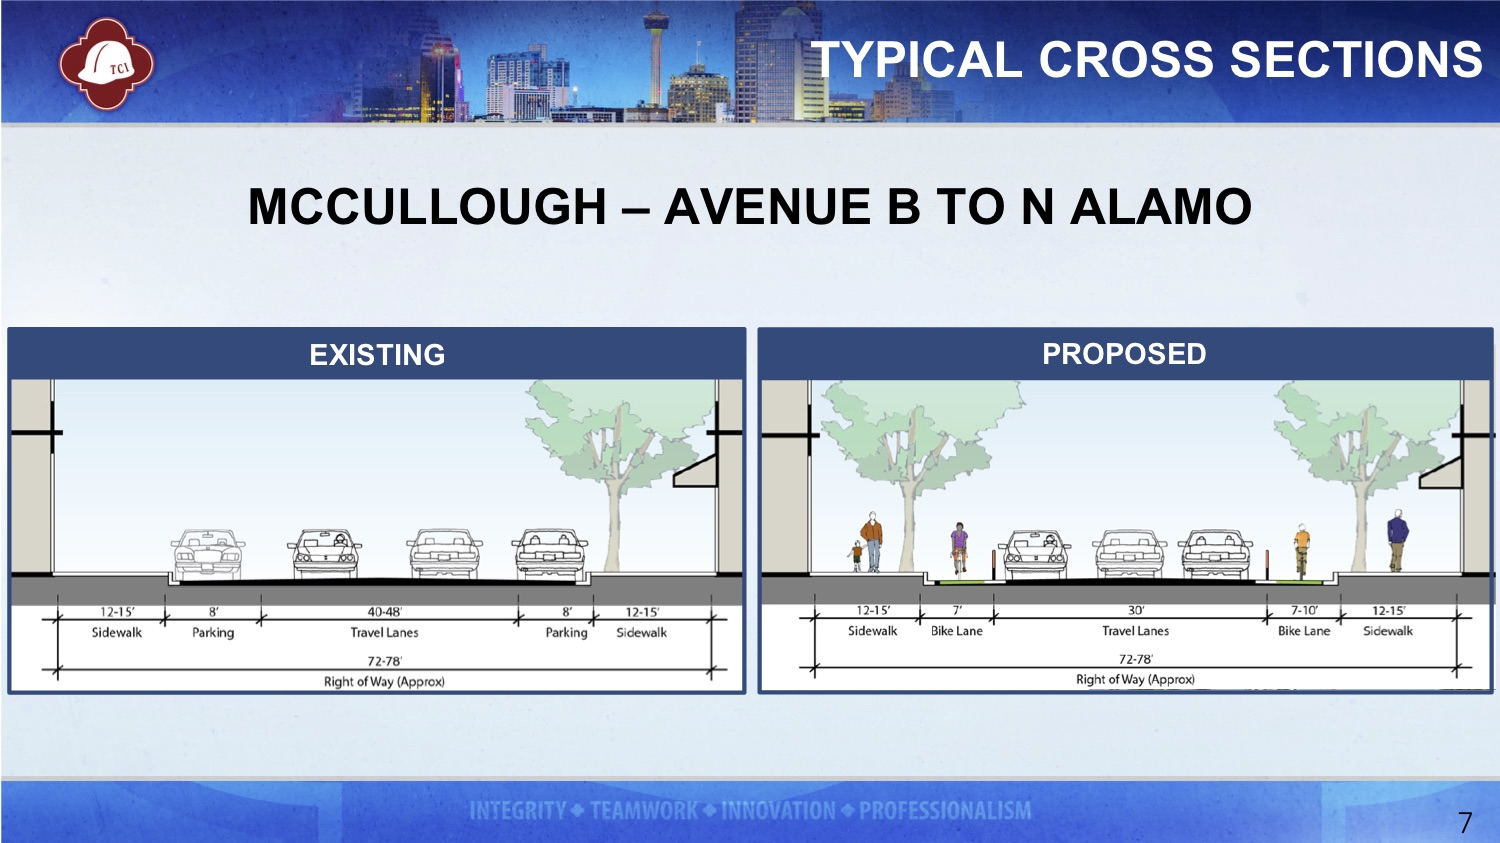 This street diagram shows current conditions and future street design of a section of McCullough Avenue.